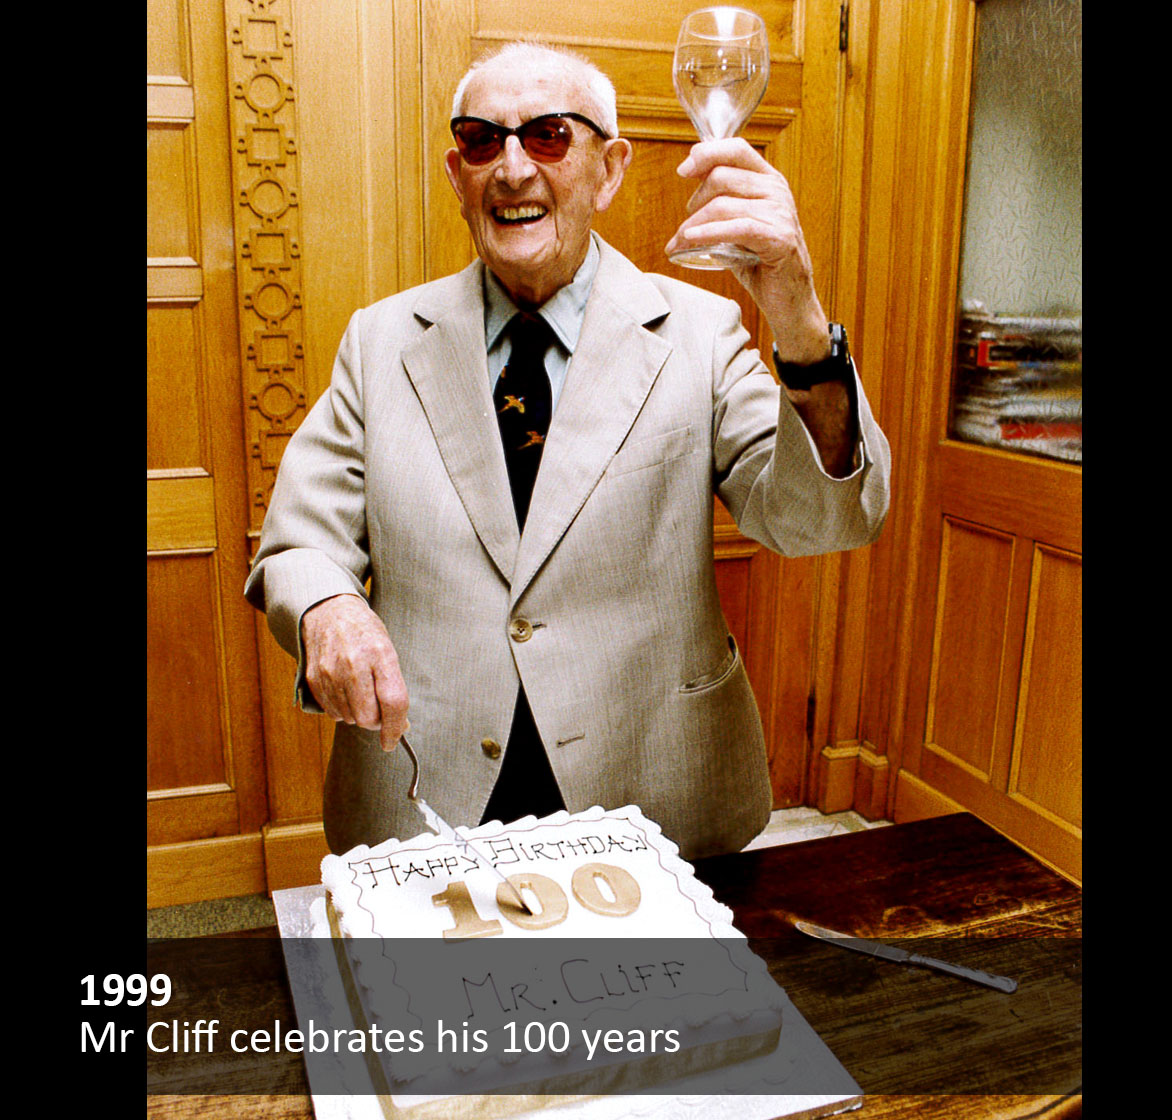 Mr Cliff celebrates his 100 years